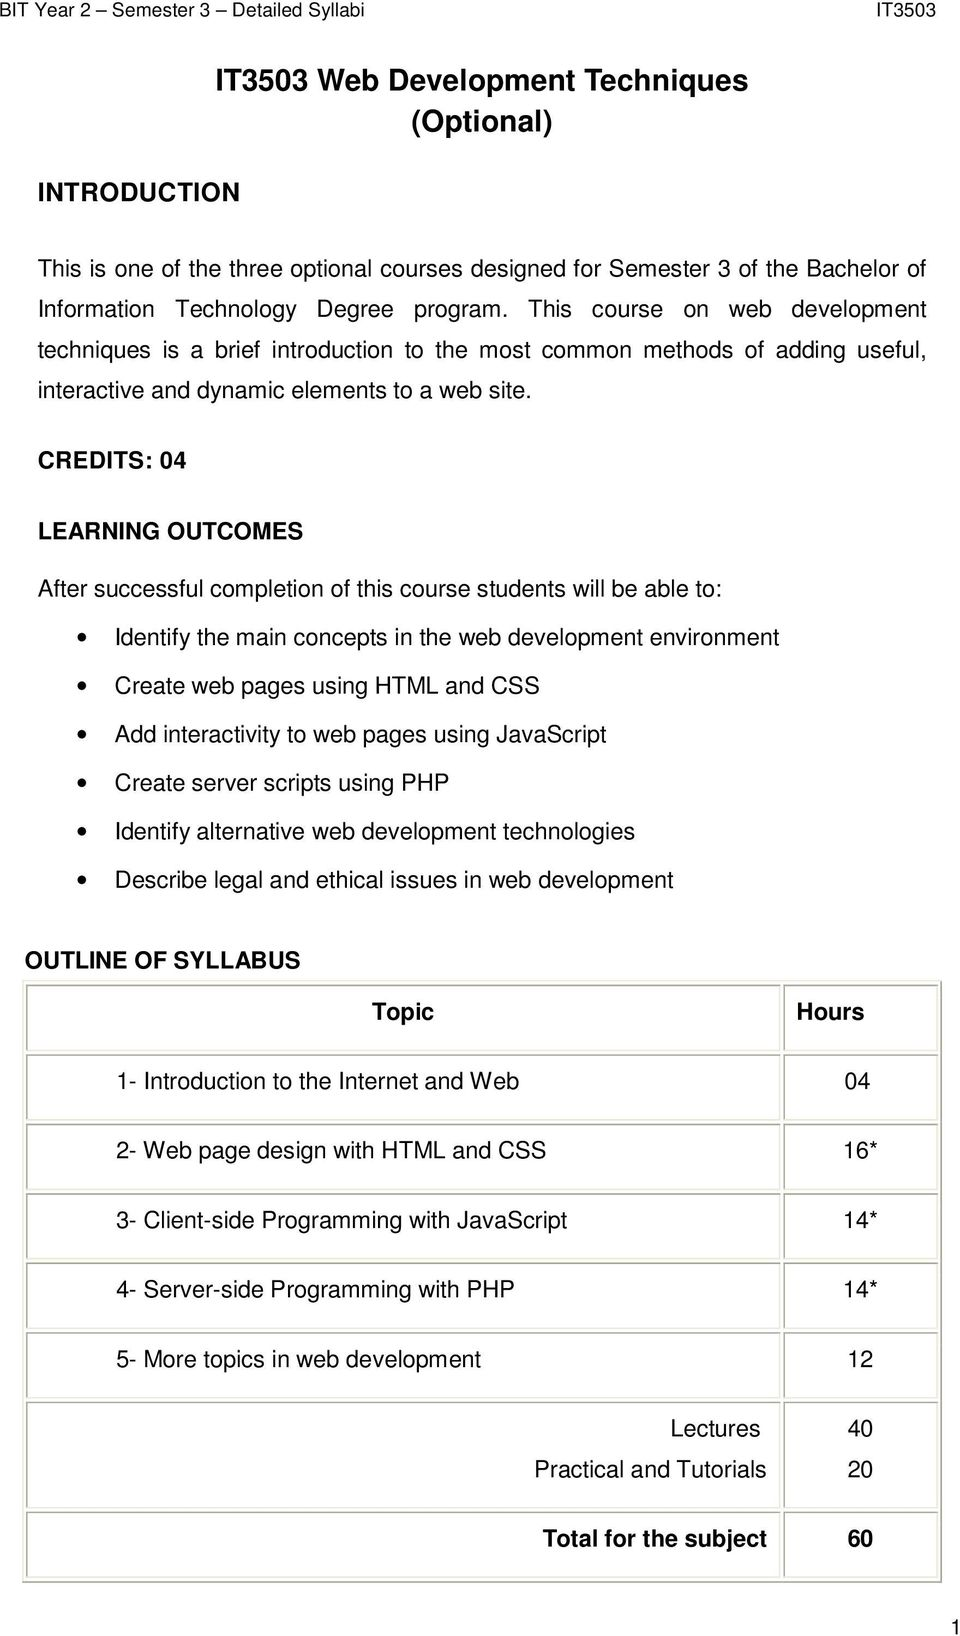 CREDITS: 04 LEARNING OUTCOMES After successful completion of this course students will be able to: Identify the main concepts in the web development environment Create web pages using HTML and CSS